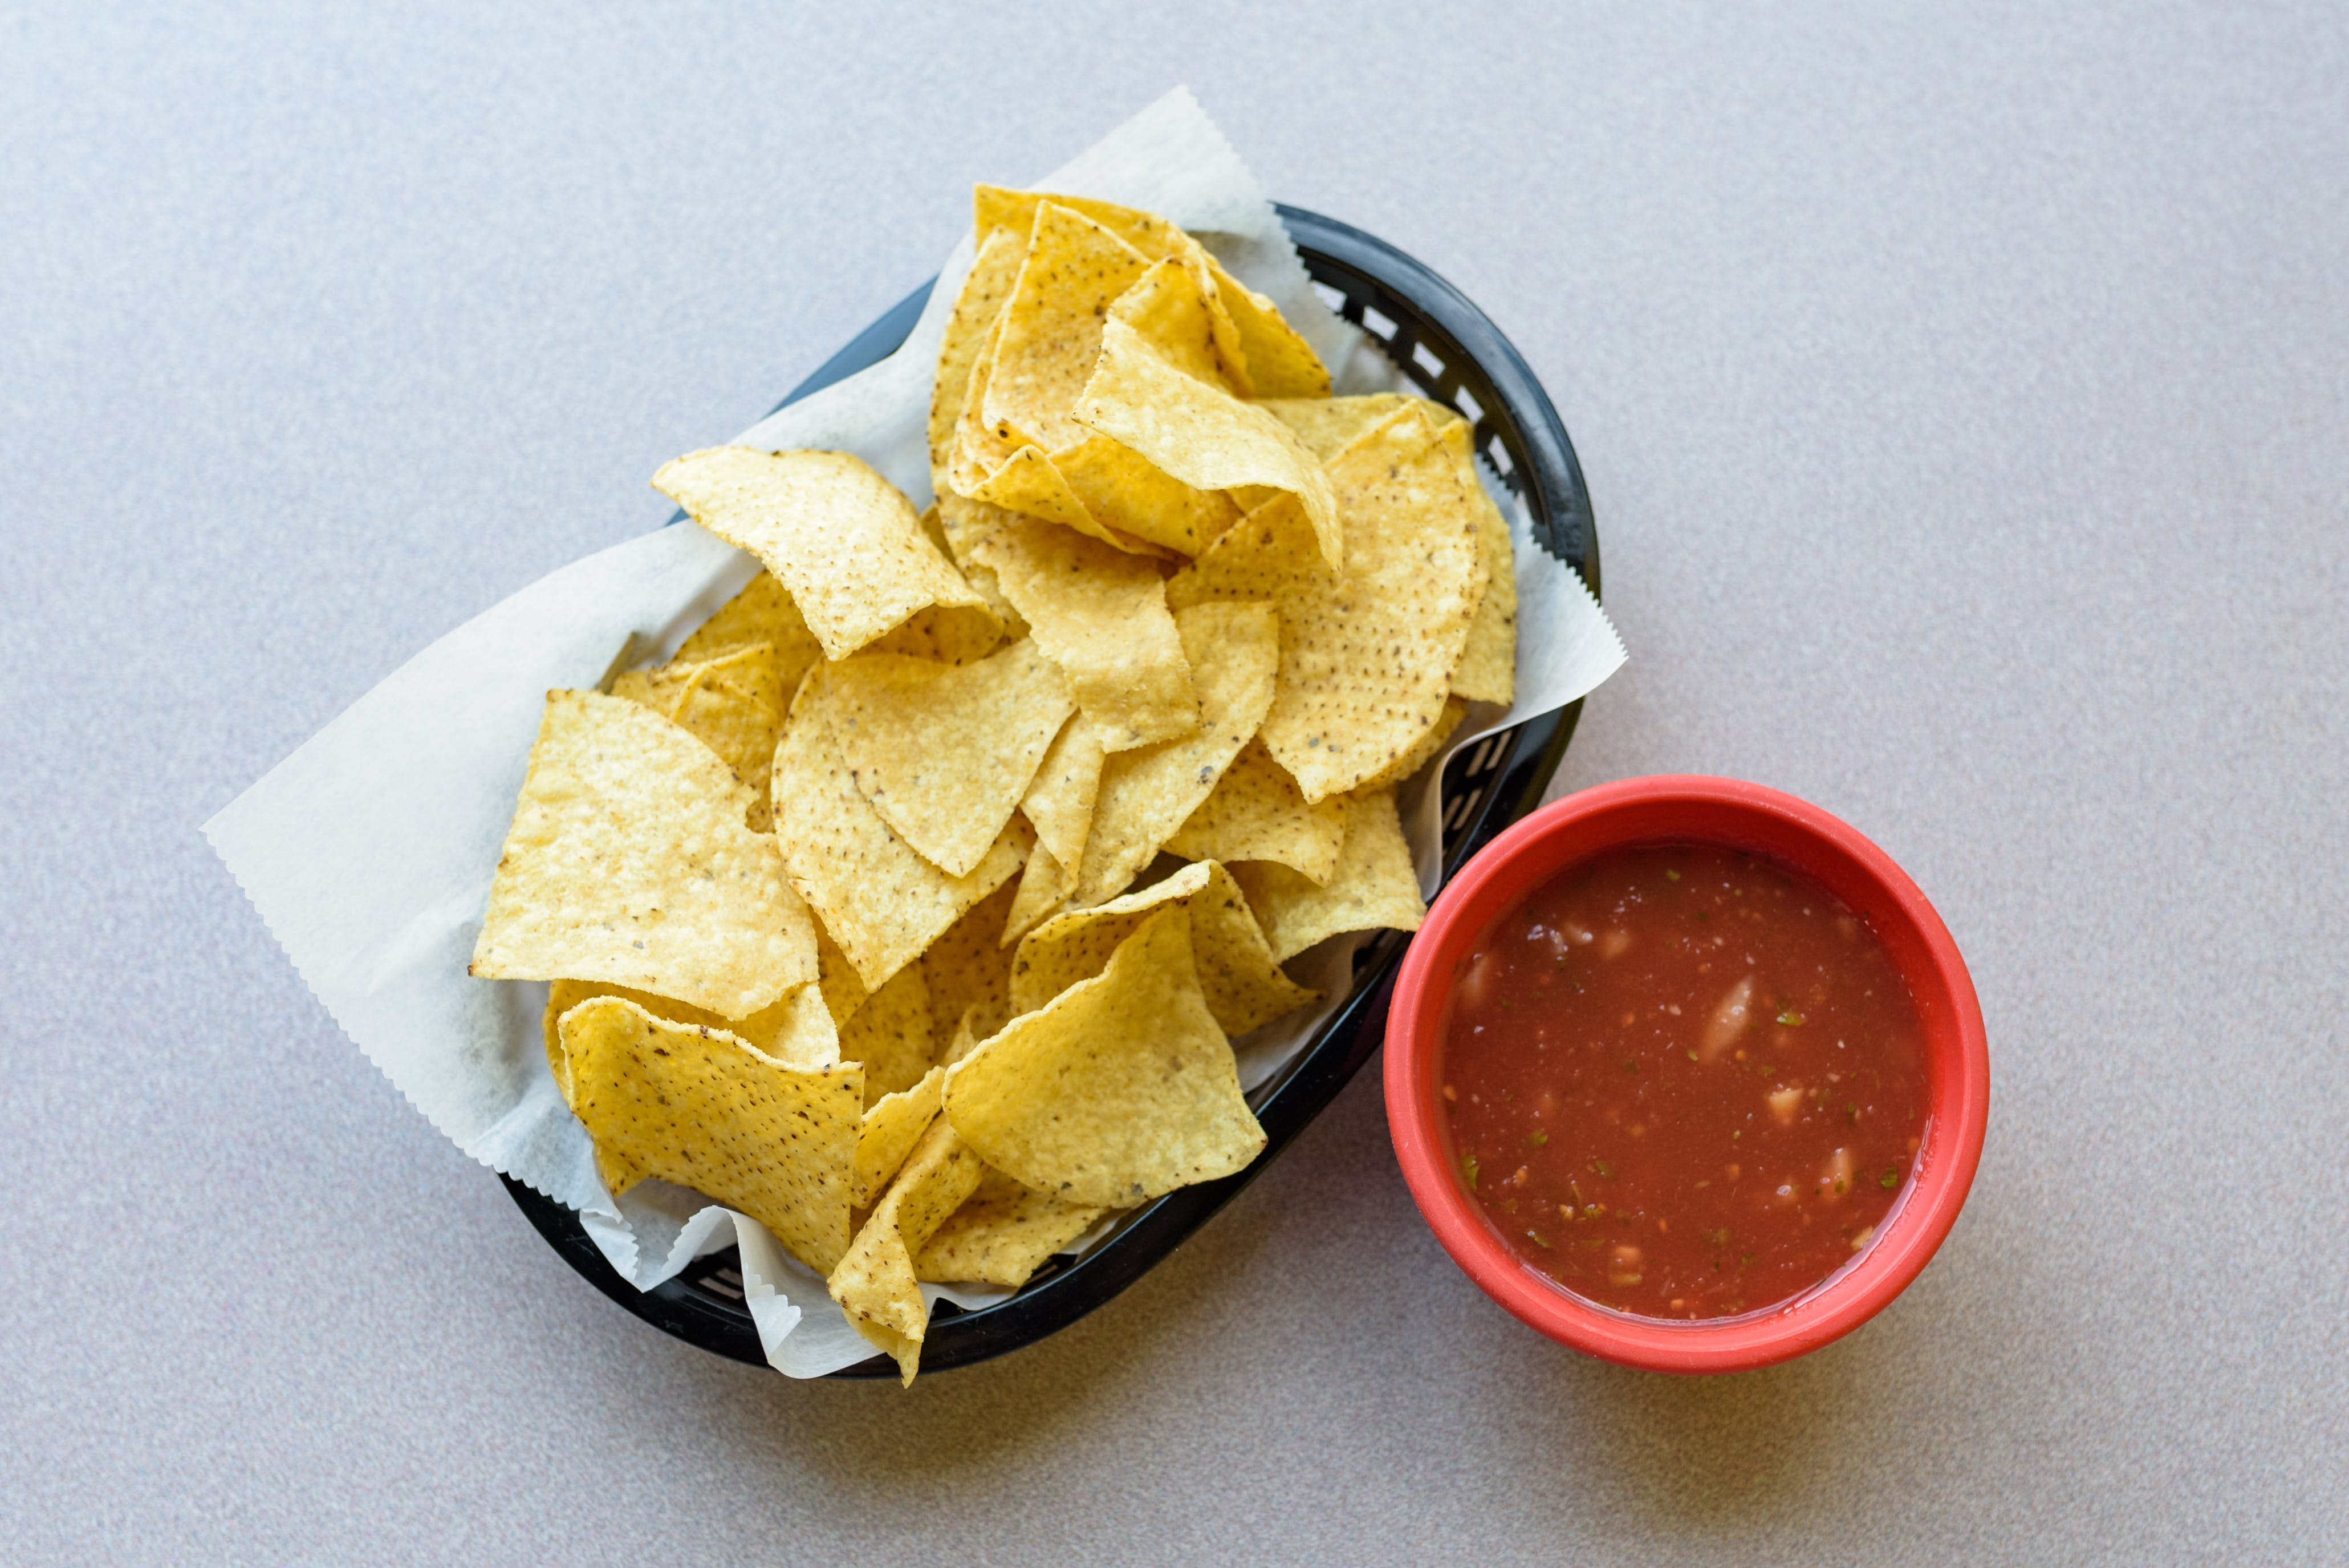 Chips from Taco King - W Liberty Rd. in Ann Arbor, MI